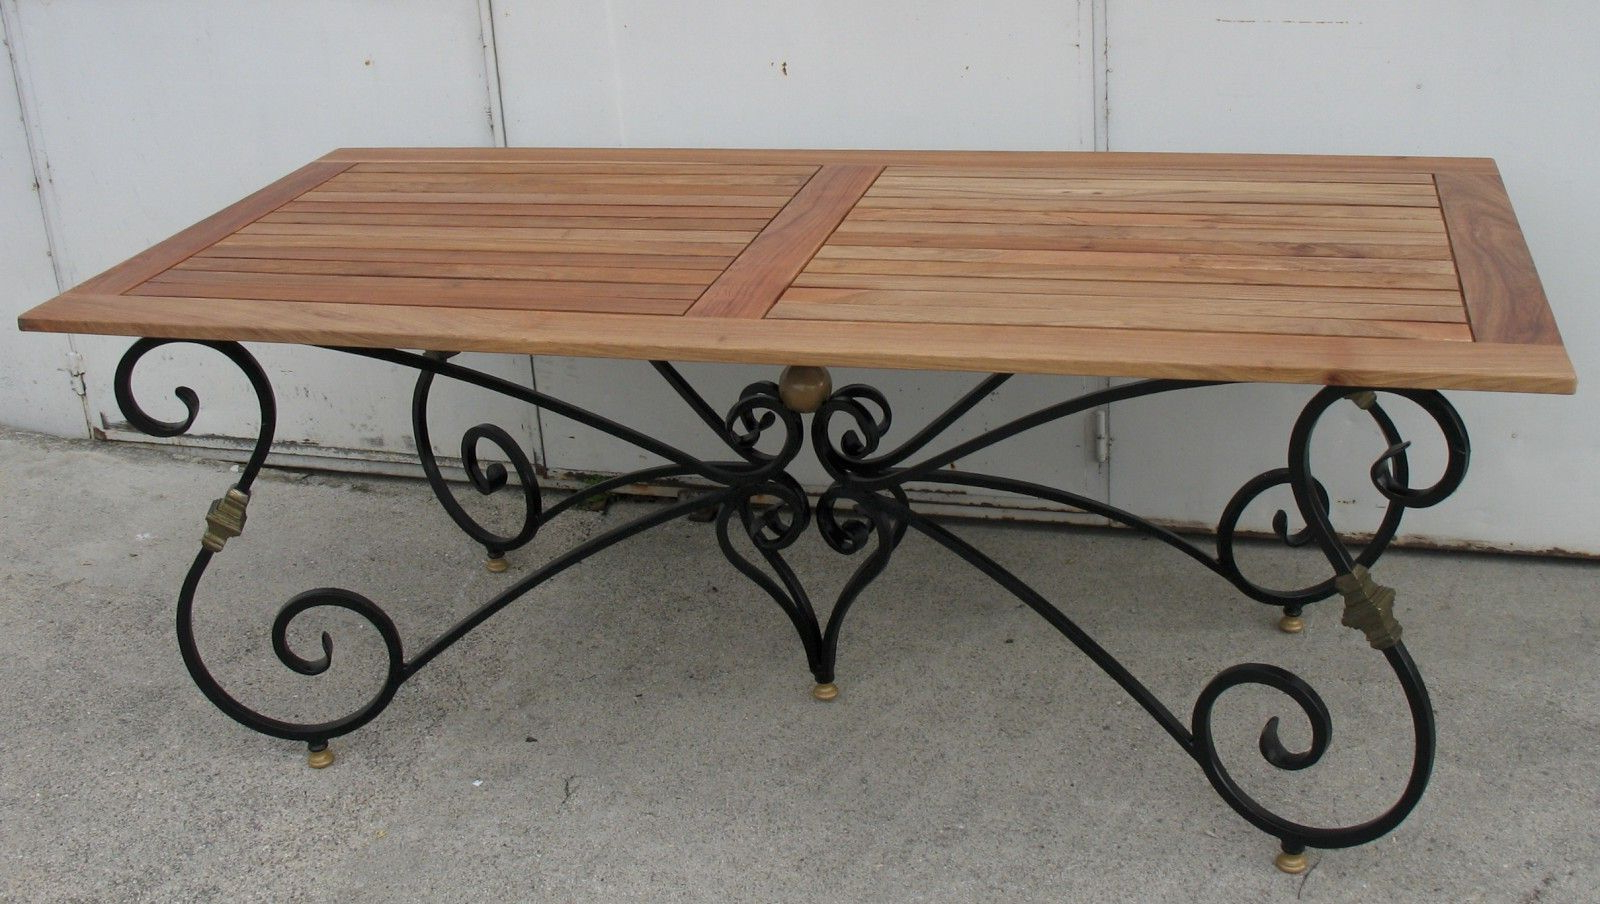 Iron Wood Dining Tables Intended For Well Liked Dining Table With Base In Black And Gold Wrought Iron With (View 3 of 30)